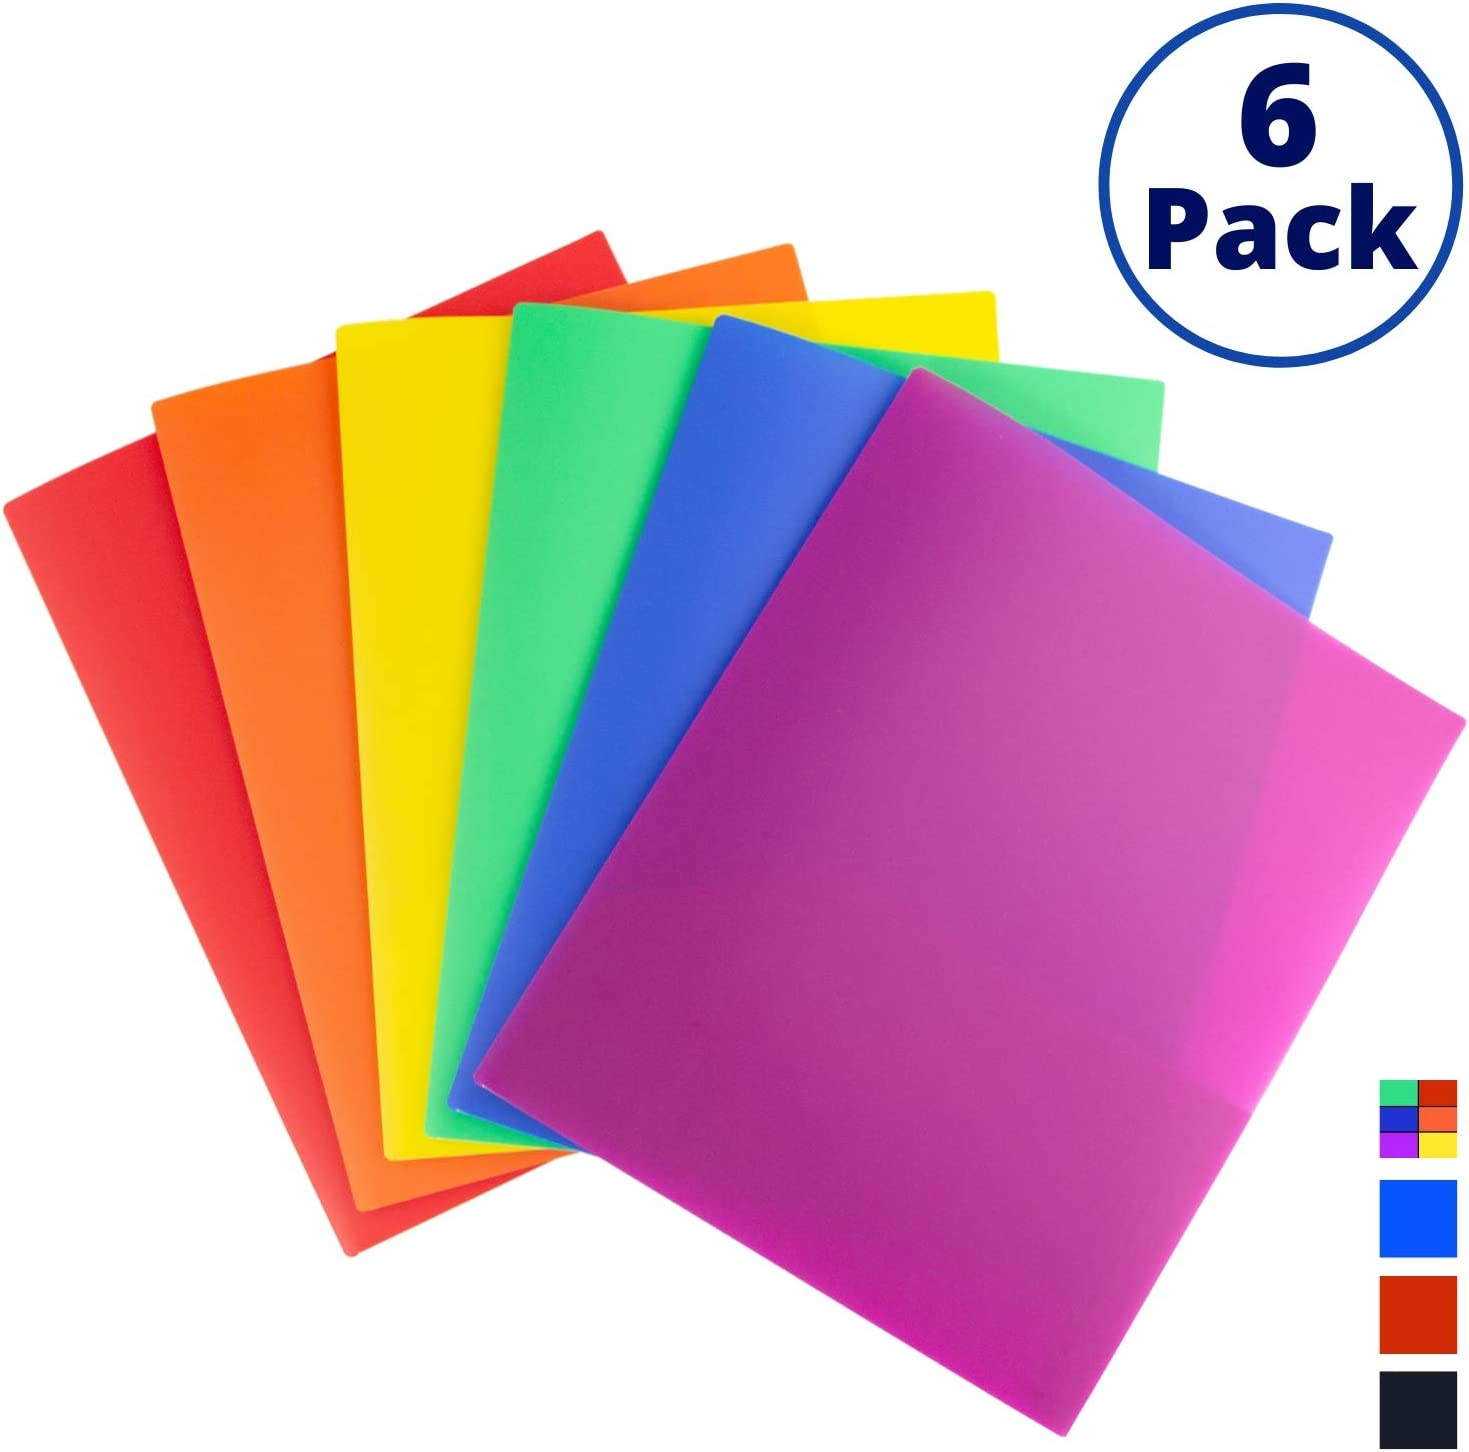 Dunwell Colored Pocket Folders, 2-Pocket File Folders (6 Pack, Colorful) School Folders, Plastic Folders with Labels, Two Pocket Folders, Letter Size File Folders with Pockets, Colored File Folders : Office Products